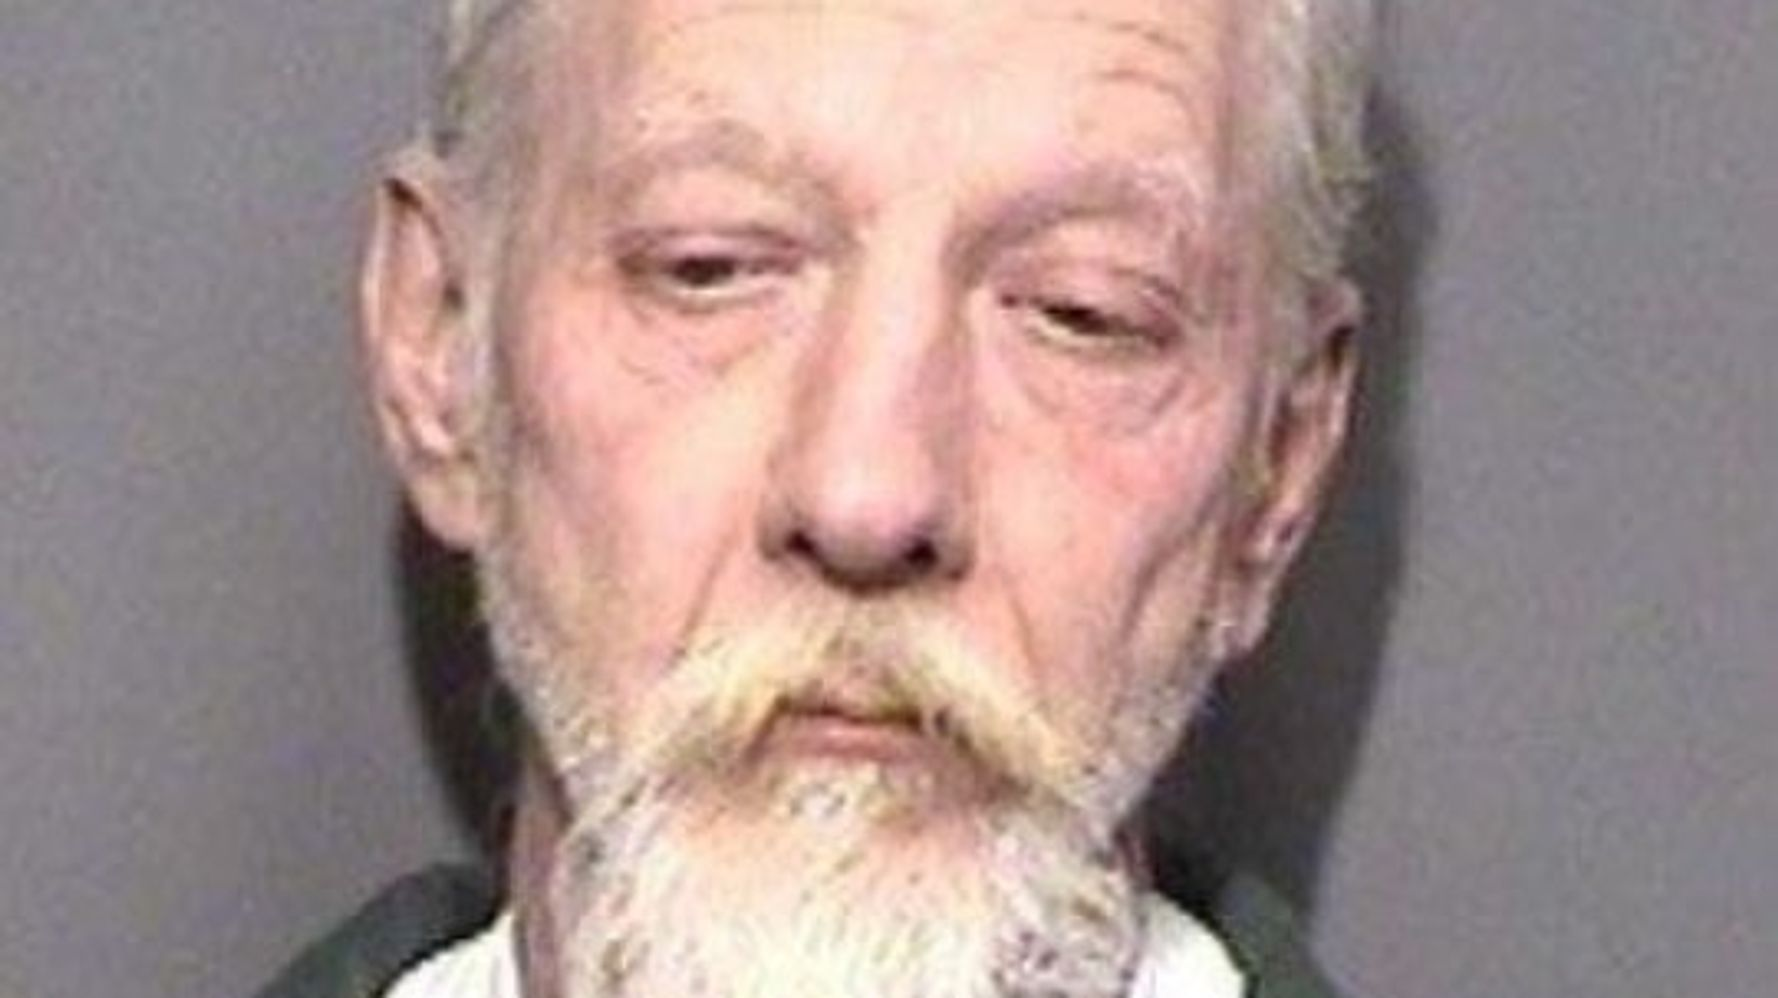 Pennsylvania Man Who Murdered Wife, Stepdaughter Could Be